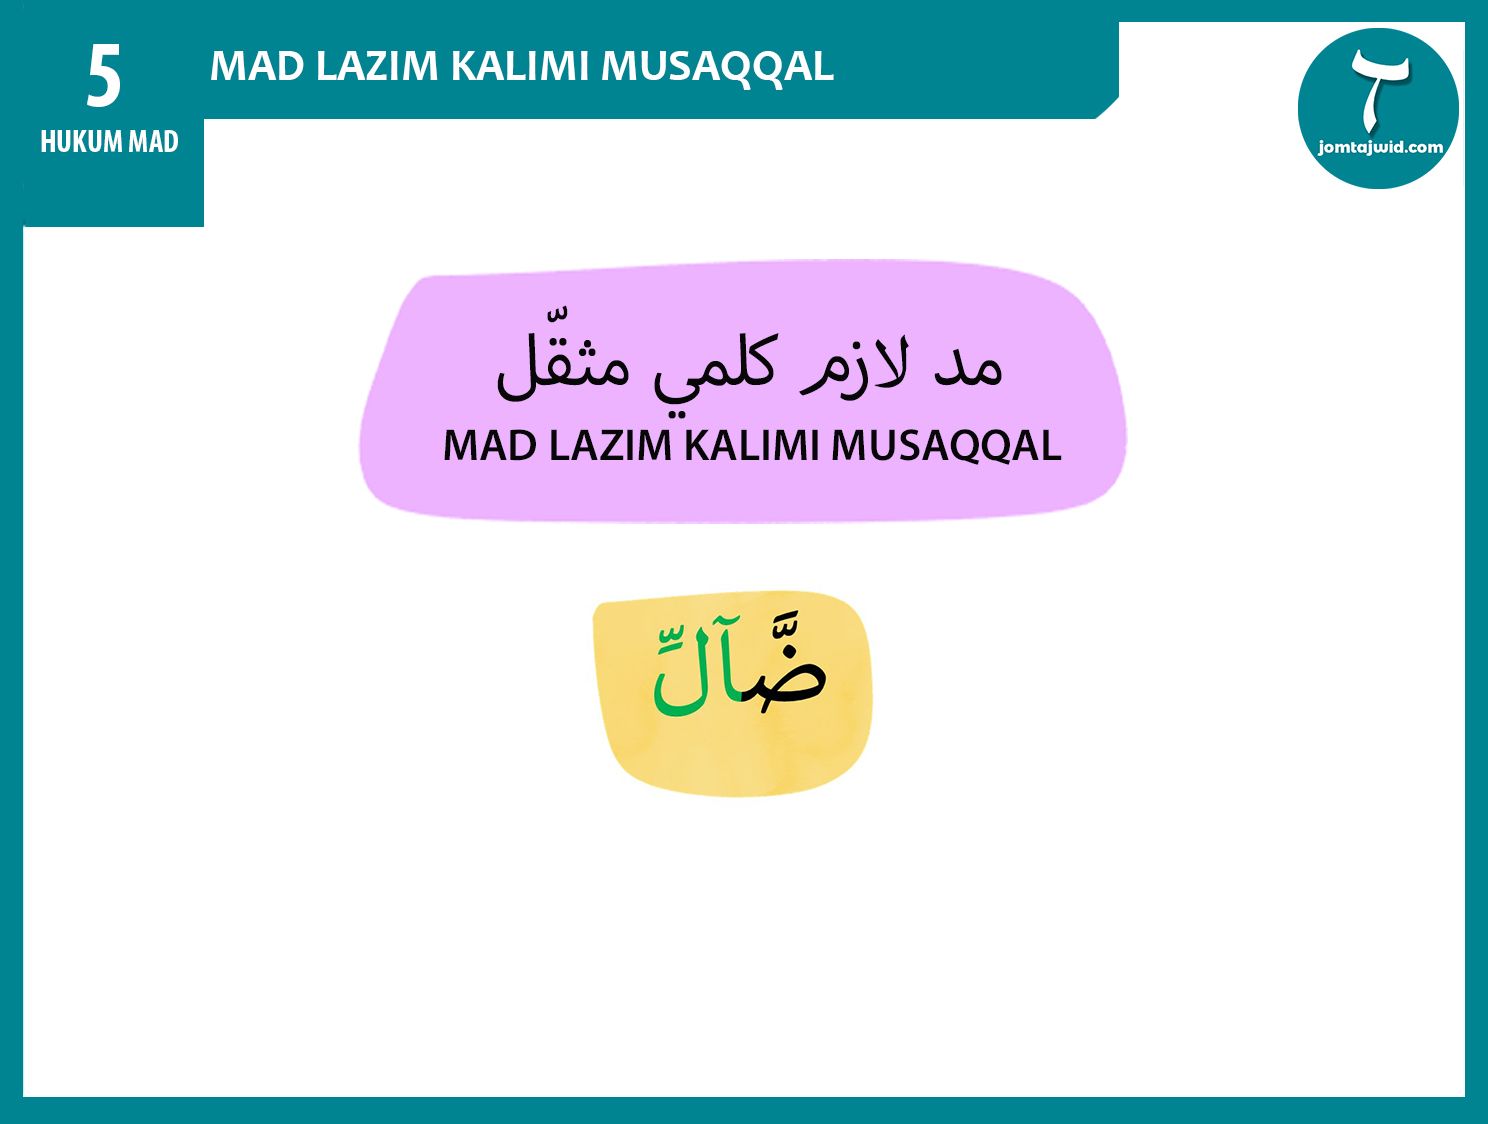 JomTajwid - Hukum mad lazim kalimi musaqqal 14 (Feature) new4